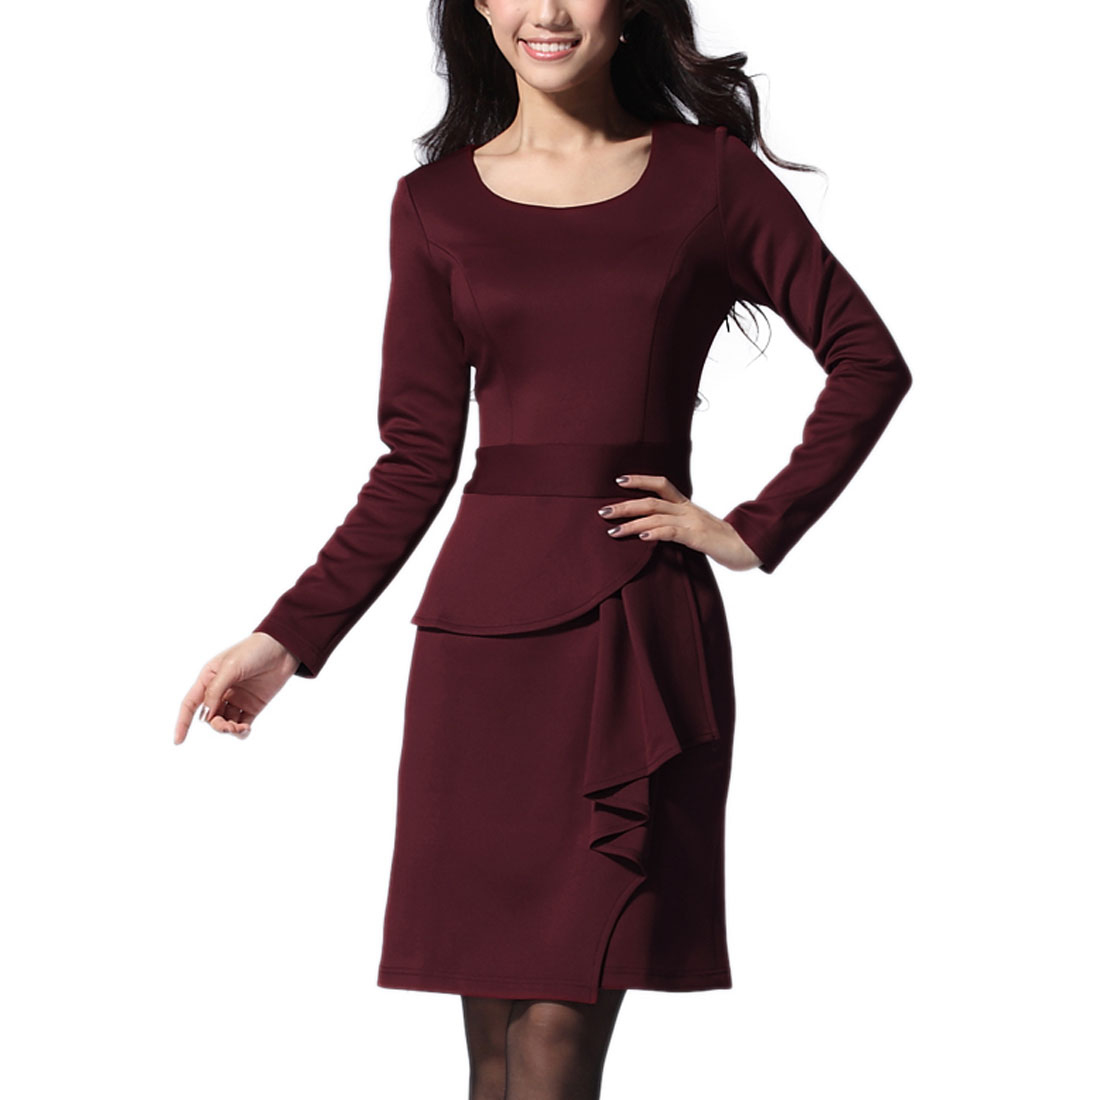 Women Long Sleeves Round Neck Ruffle Decor Dress Red XS